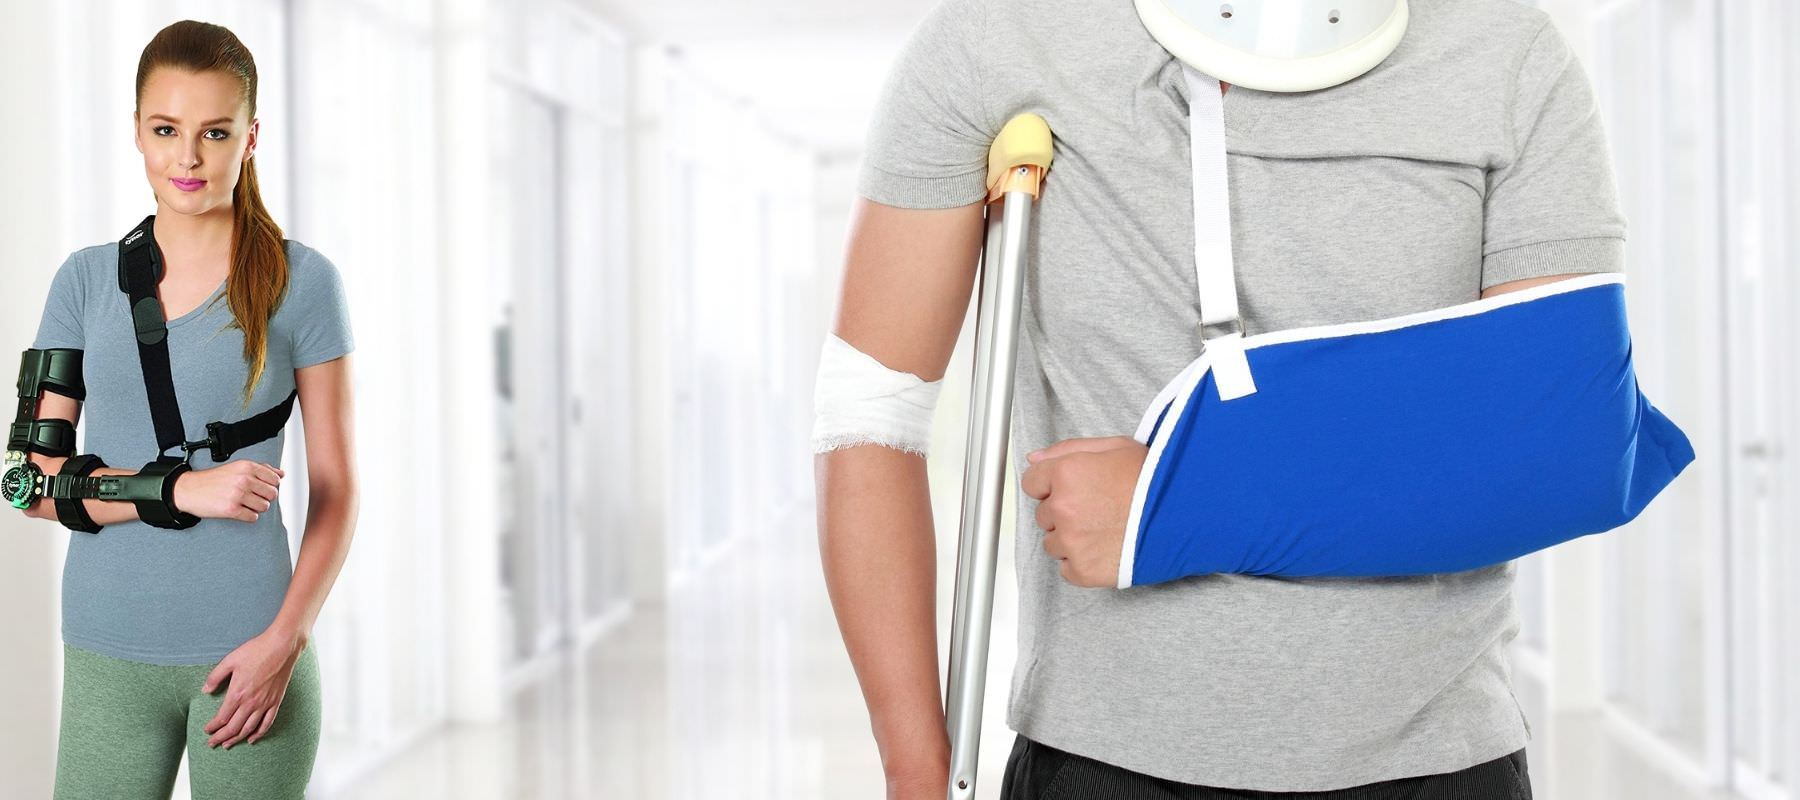 Fracture Aids such as Immobilizers, Belts, Posture Aids, Crepe Bandages, Cast Shoes